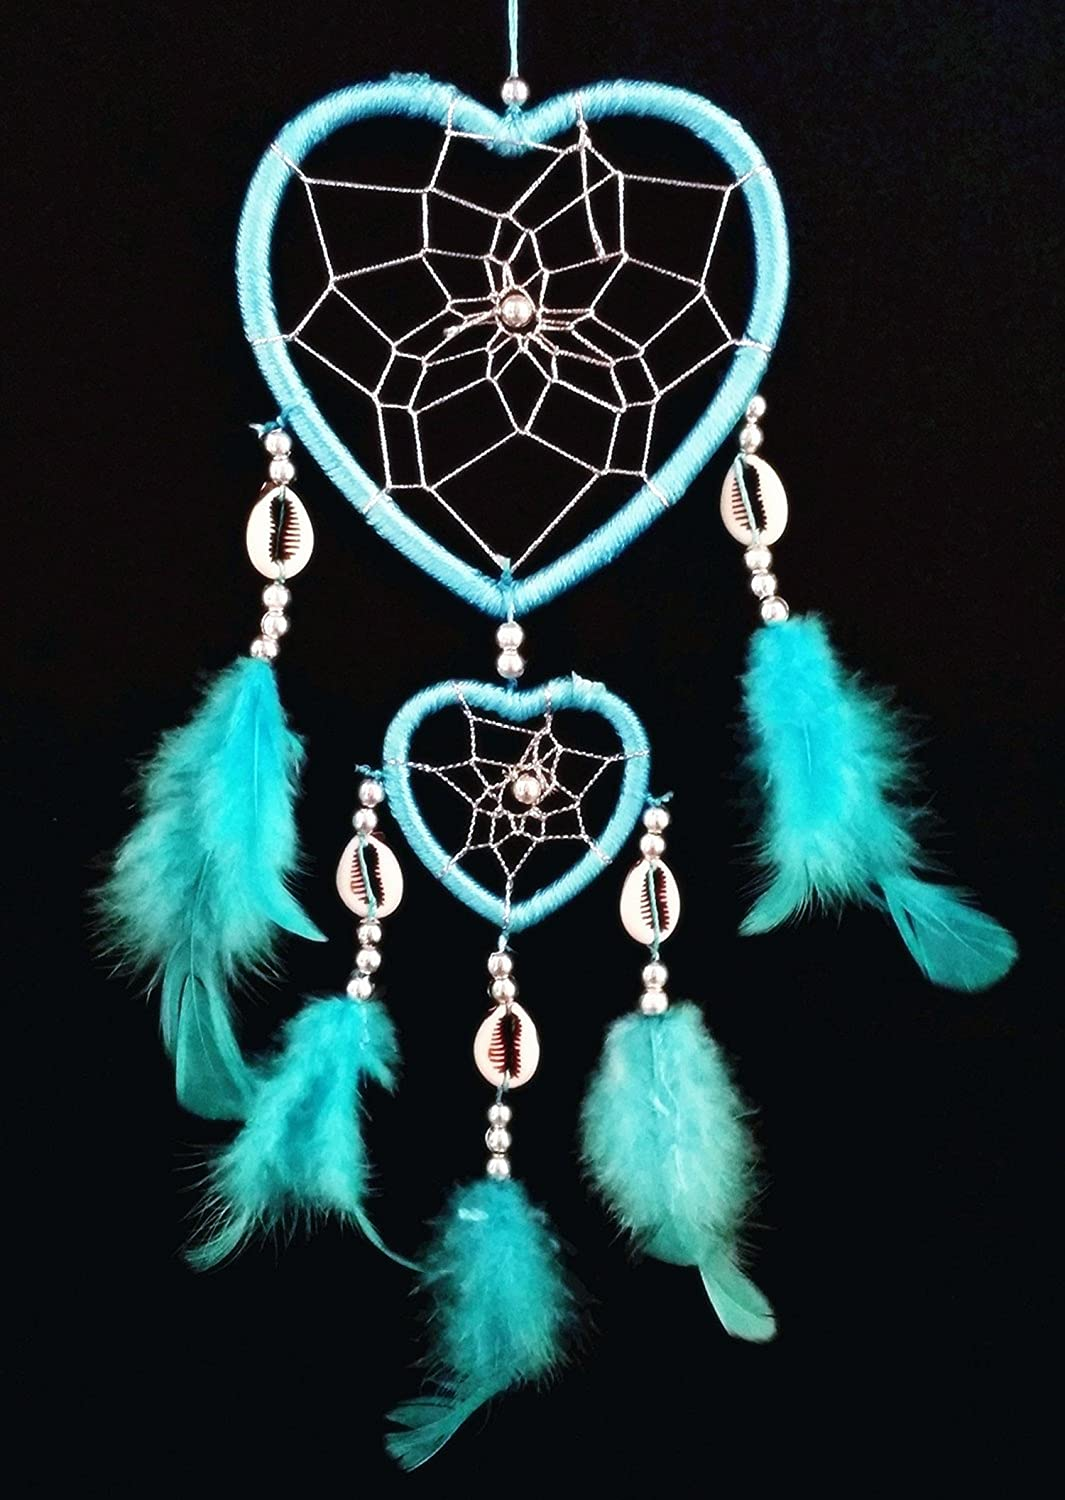 List Of Synonyms And Antonyms Of The Word Heart Dream Catcher